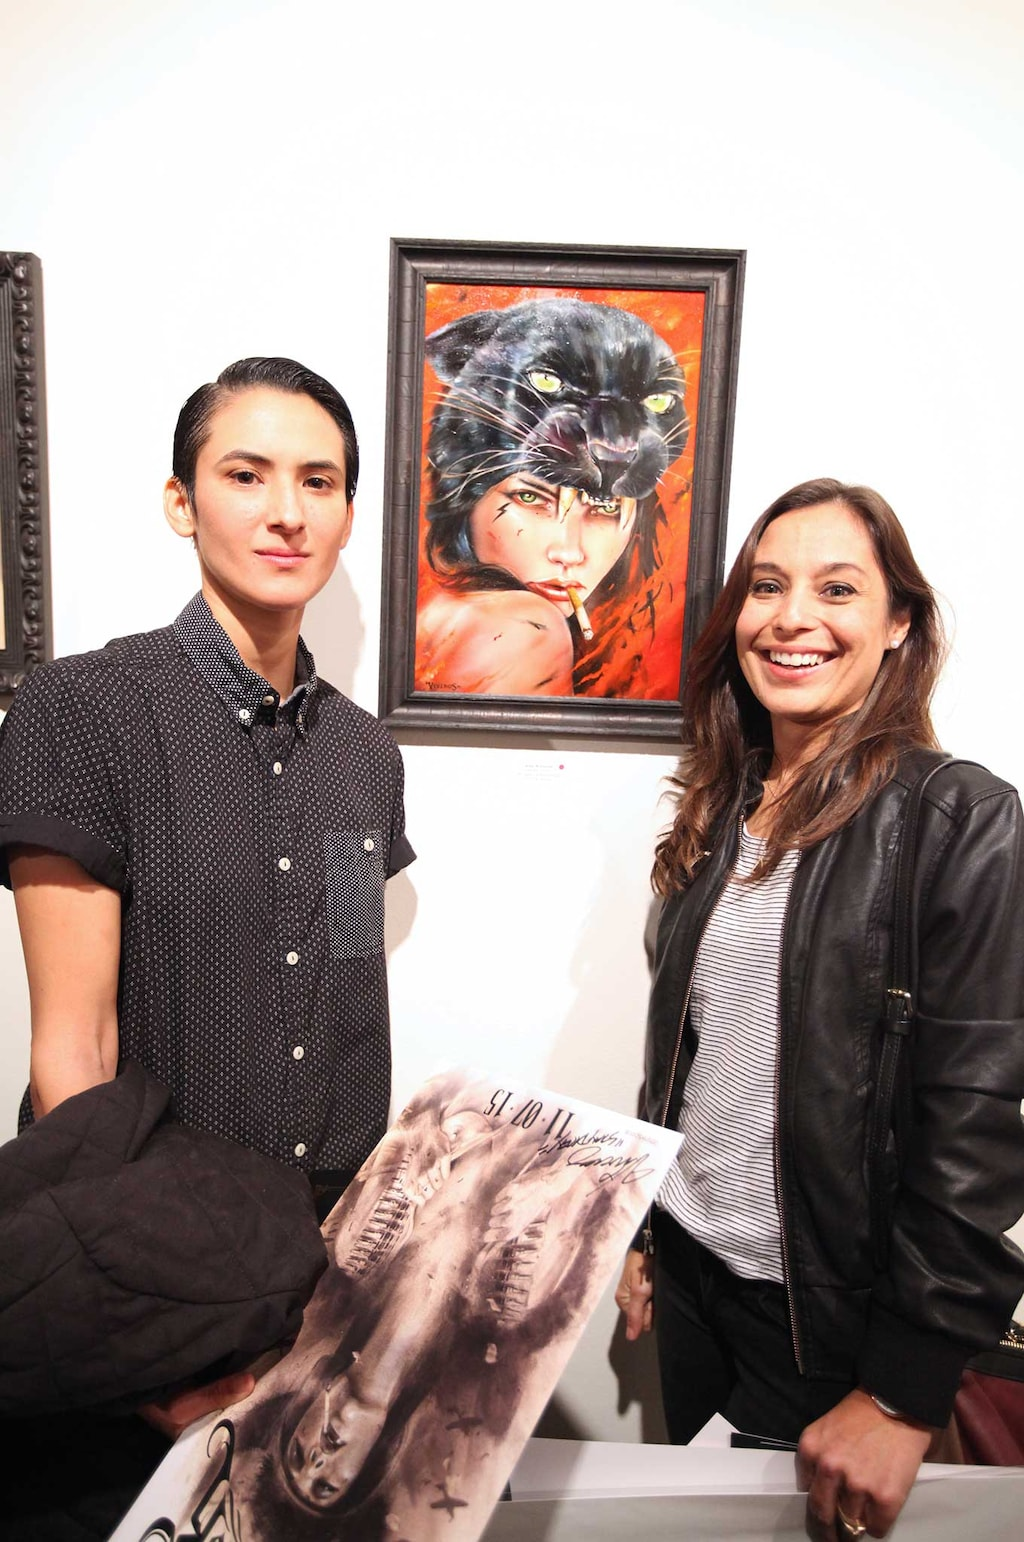 matador art exhibition flavia amber 005